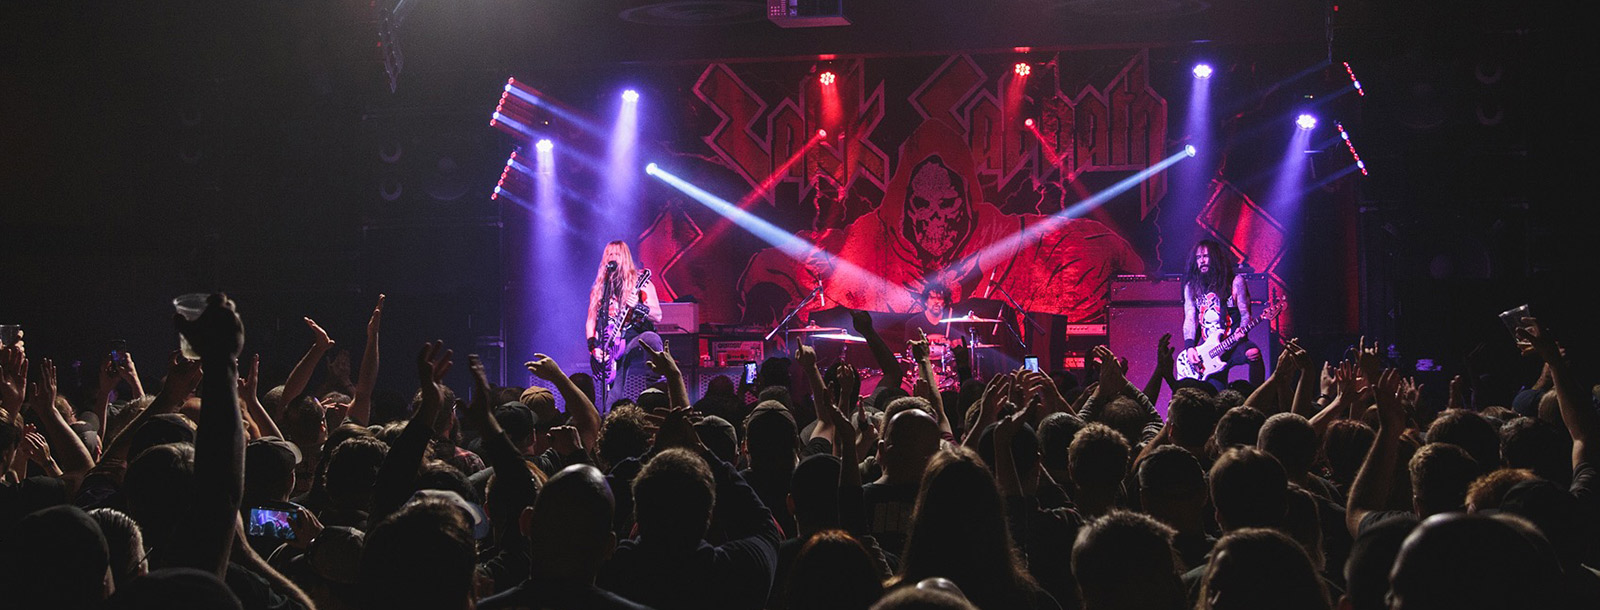 zakk sabbath - events sioux city - anthem